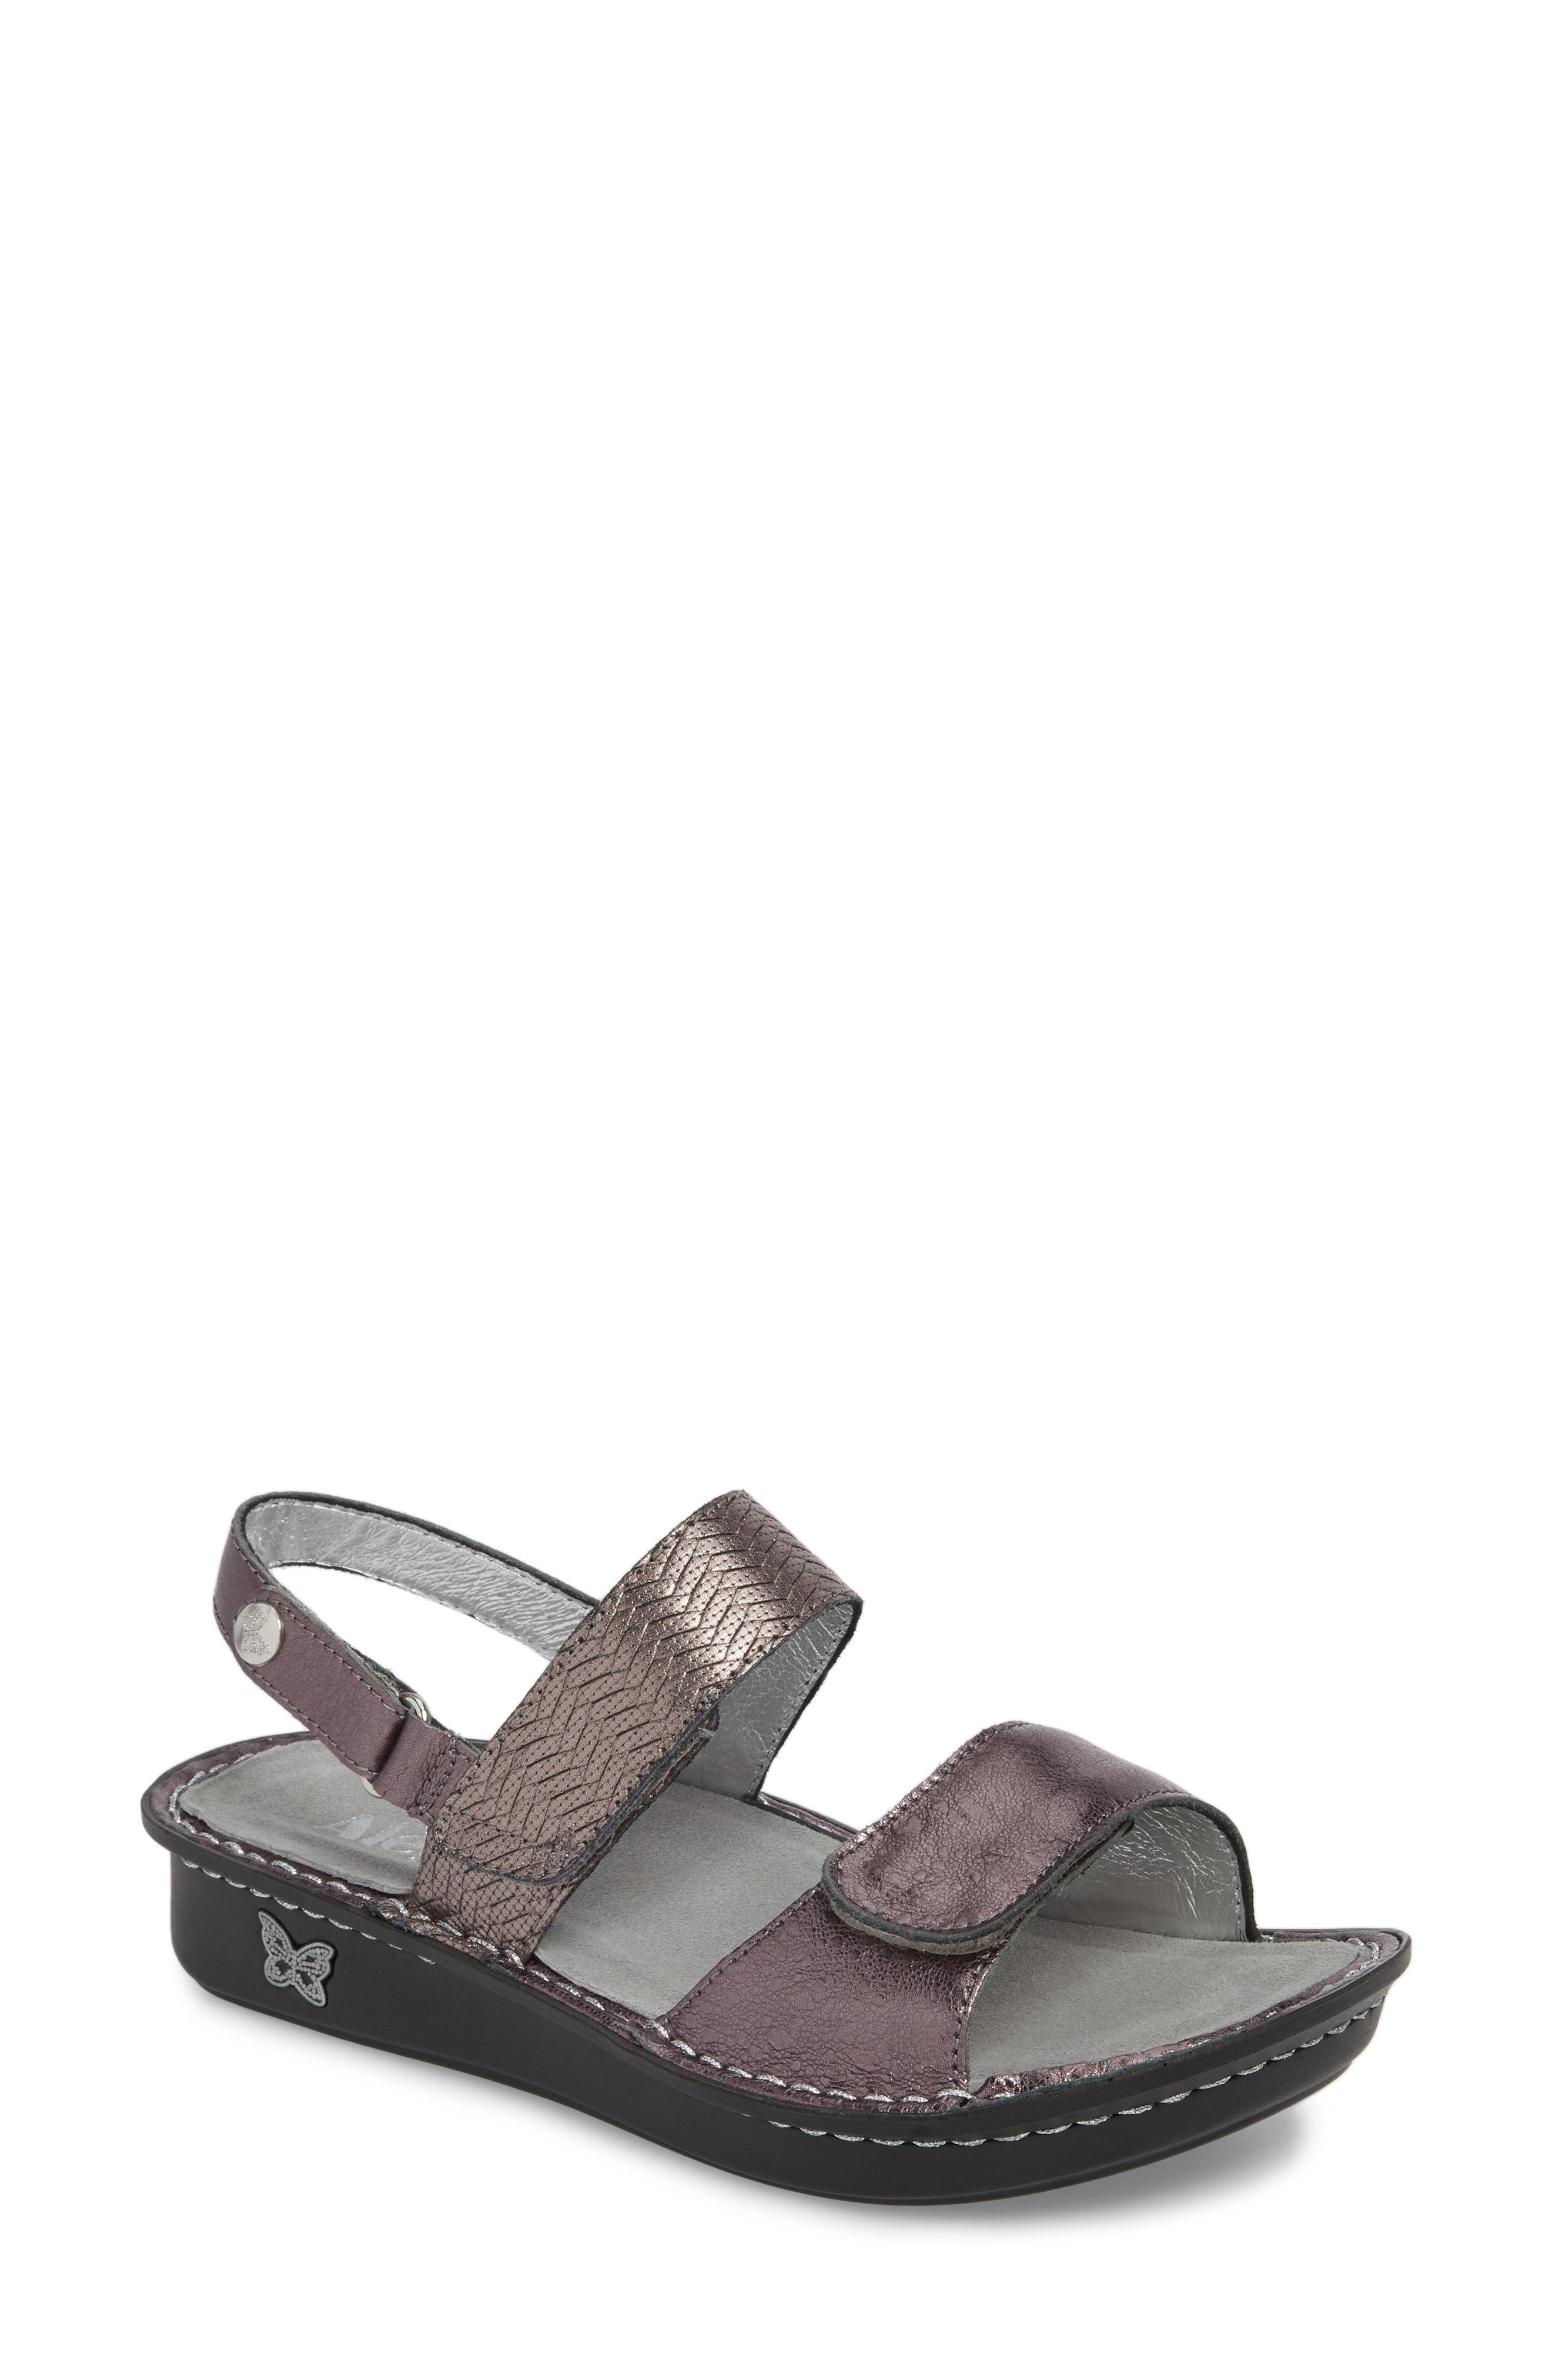 'Verona' Sandal,                         Main,                         color, Braided Pewter Leather